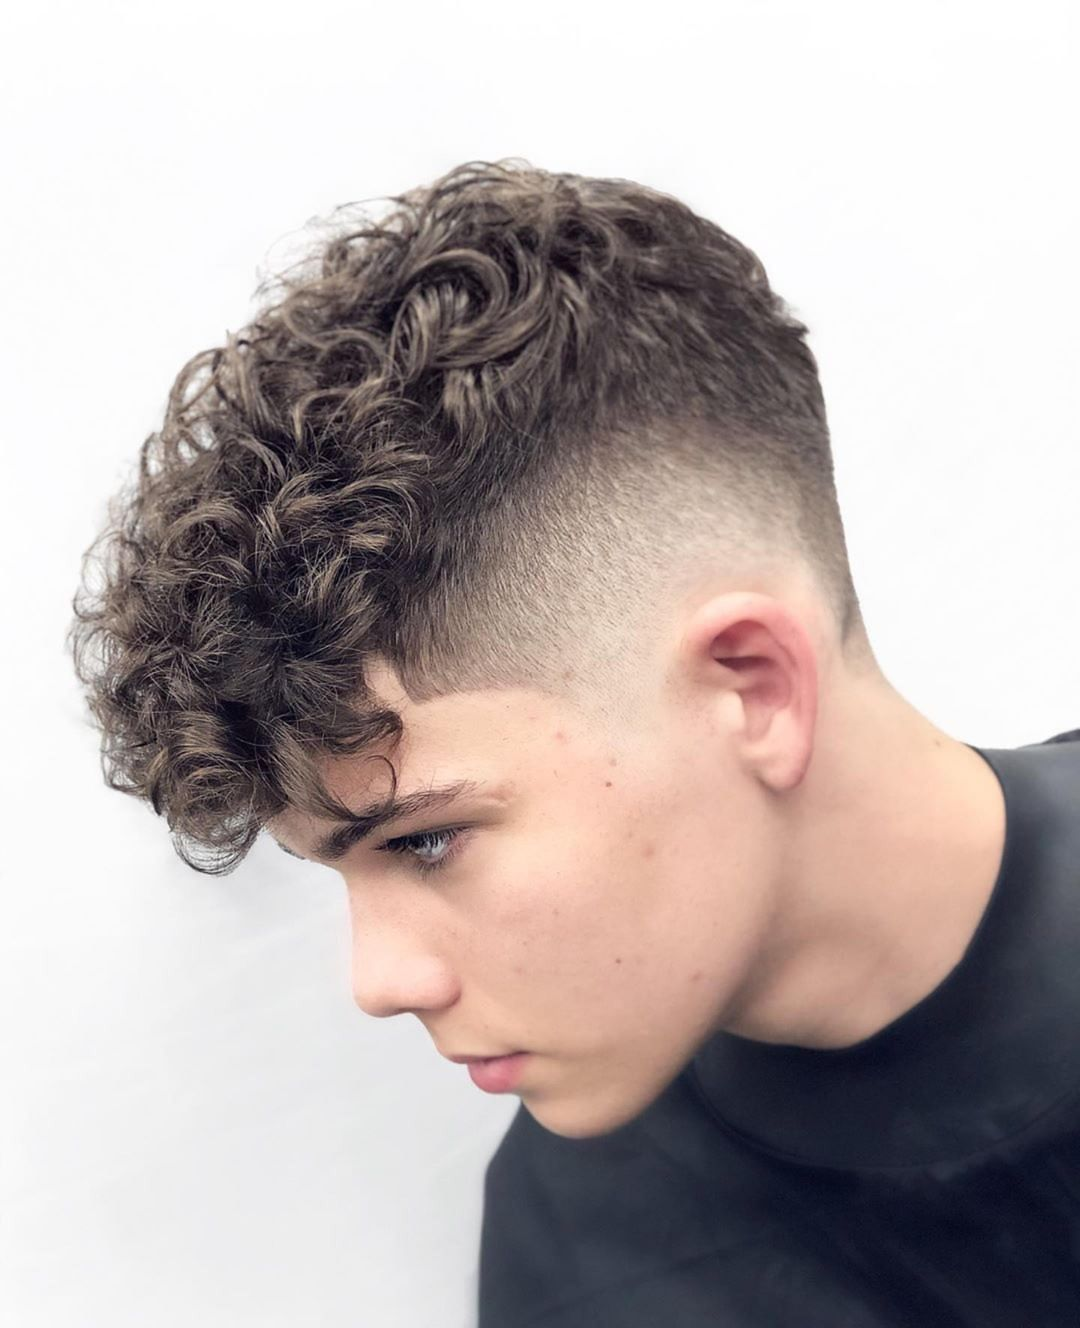 Hairbrained Me On Instagram Showing Off These Perfect Curls With The Freshest Fade Snutko Cr Haircuts For Curly Hair Men Haircut Curly Hair Curly Hair Men